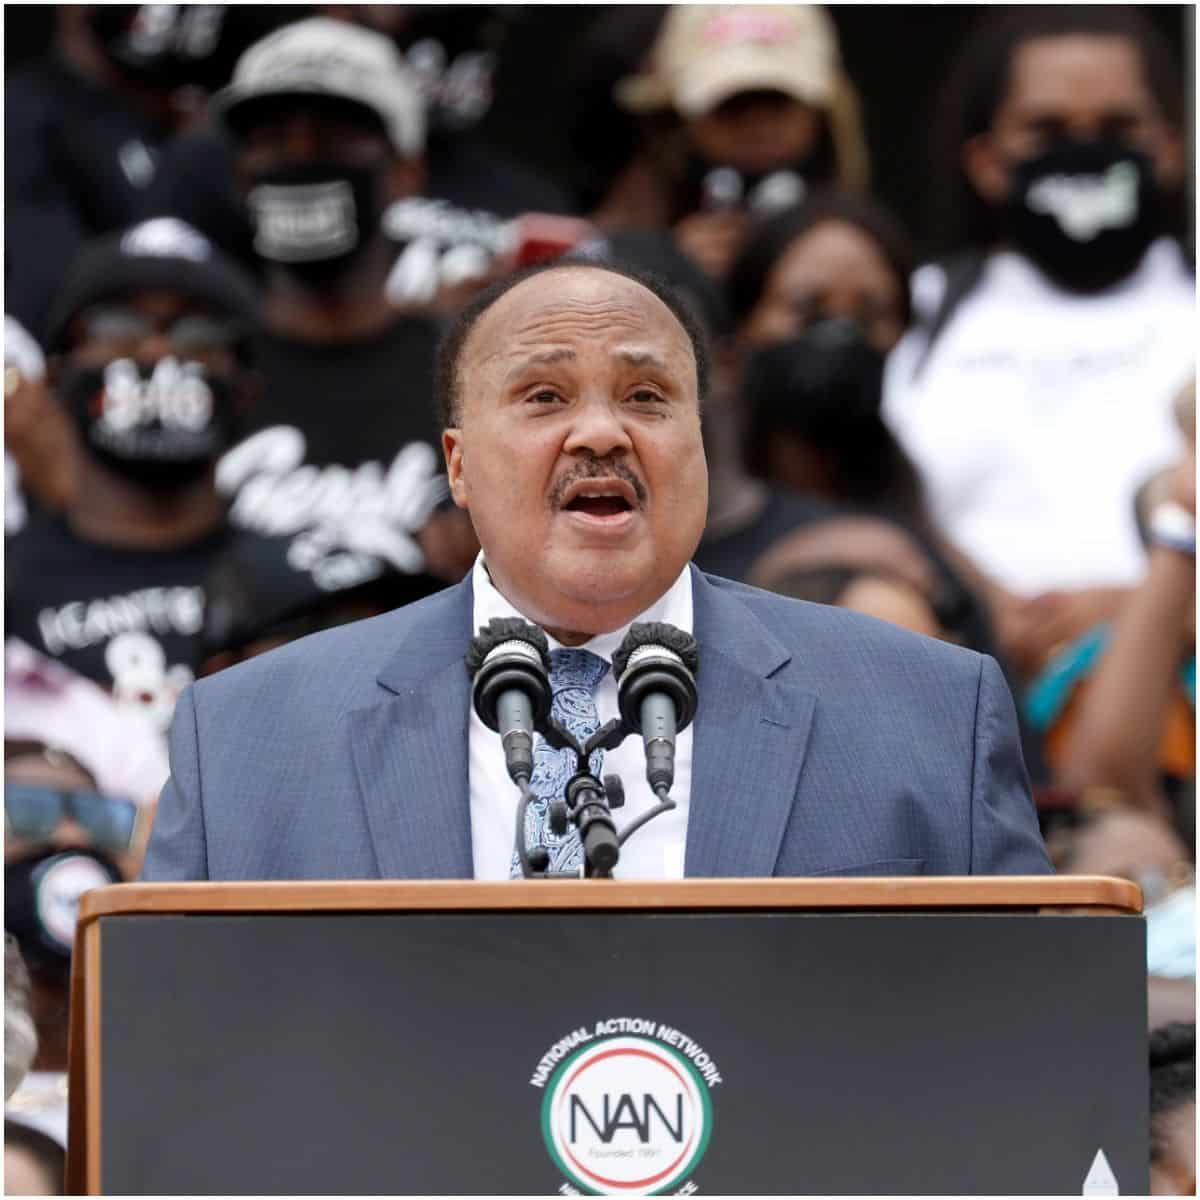 what is the net worth of Martin Luther King III